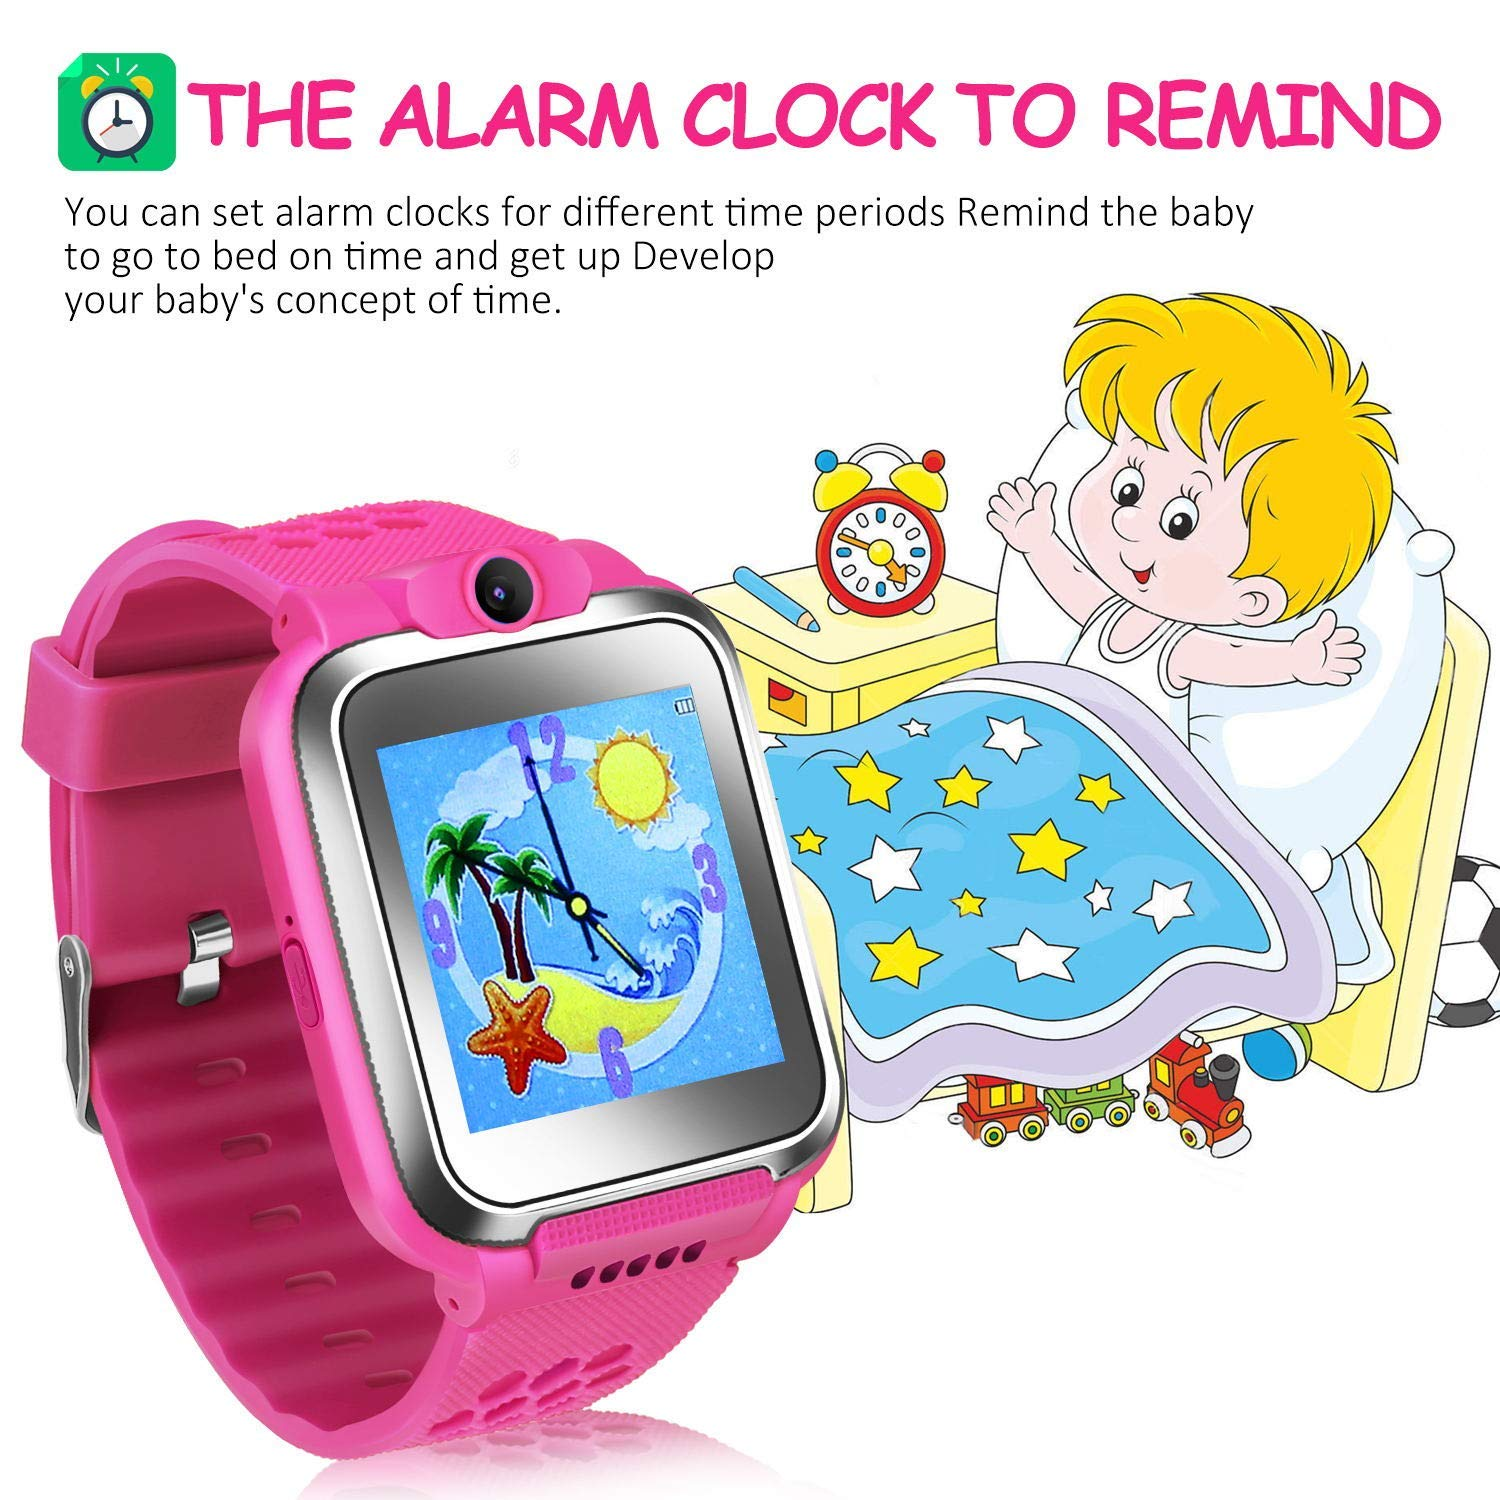 ZOPPRI Kids Game smartwatch Touch Screen Kinds of Games Kids Watch Theme Calendar Stopwatch Alarm Clock Photo Timer Multi-Function Watch Toy Gift for 3-12 Years Old boy Girl Birthday Gift (Pink) by ZOPPRI (Image #2)